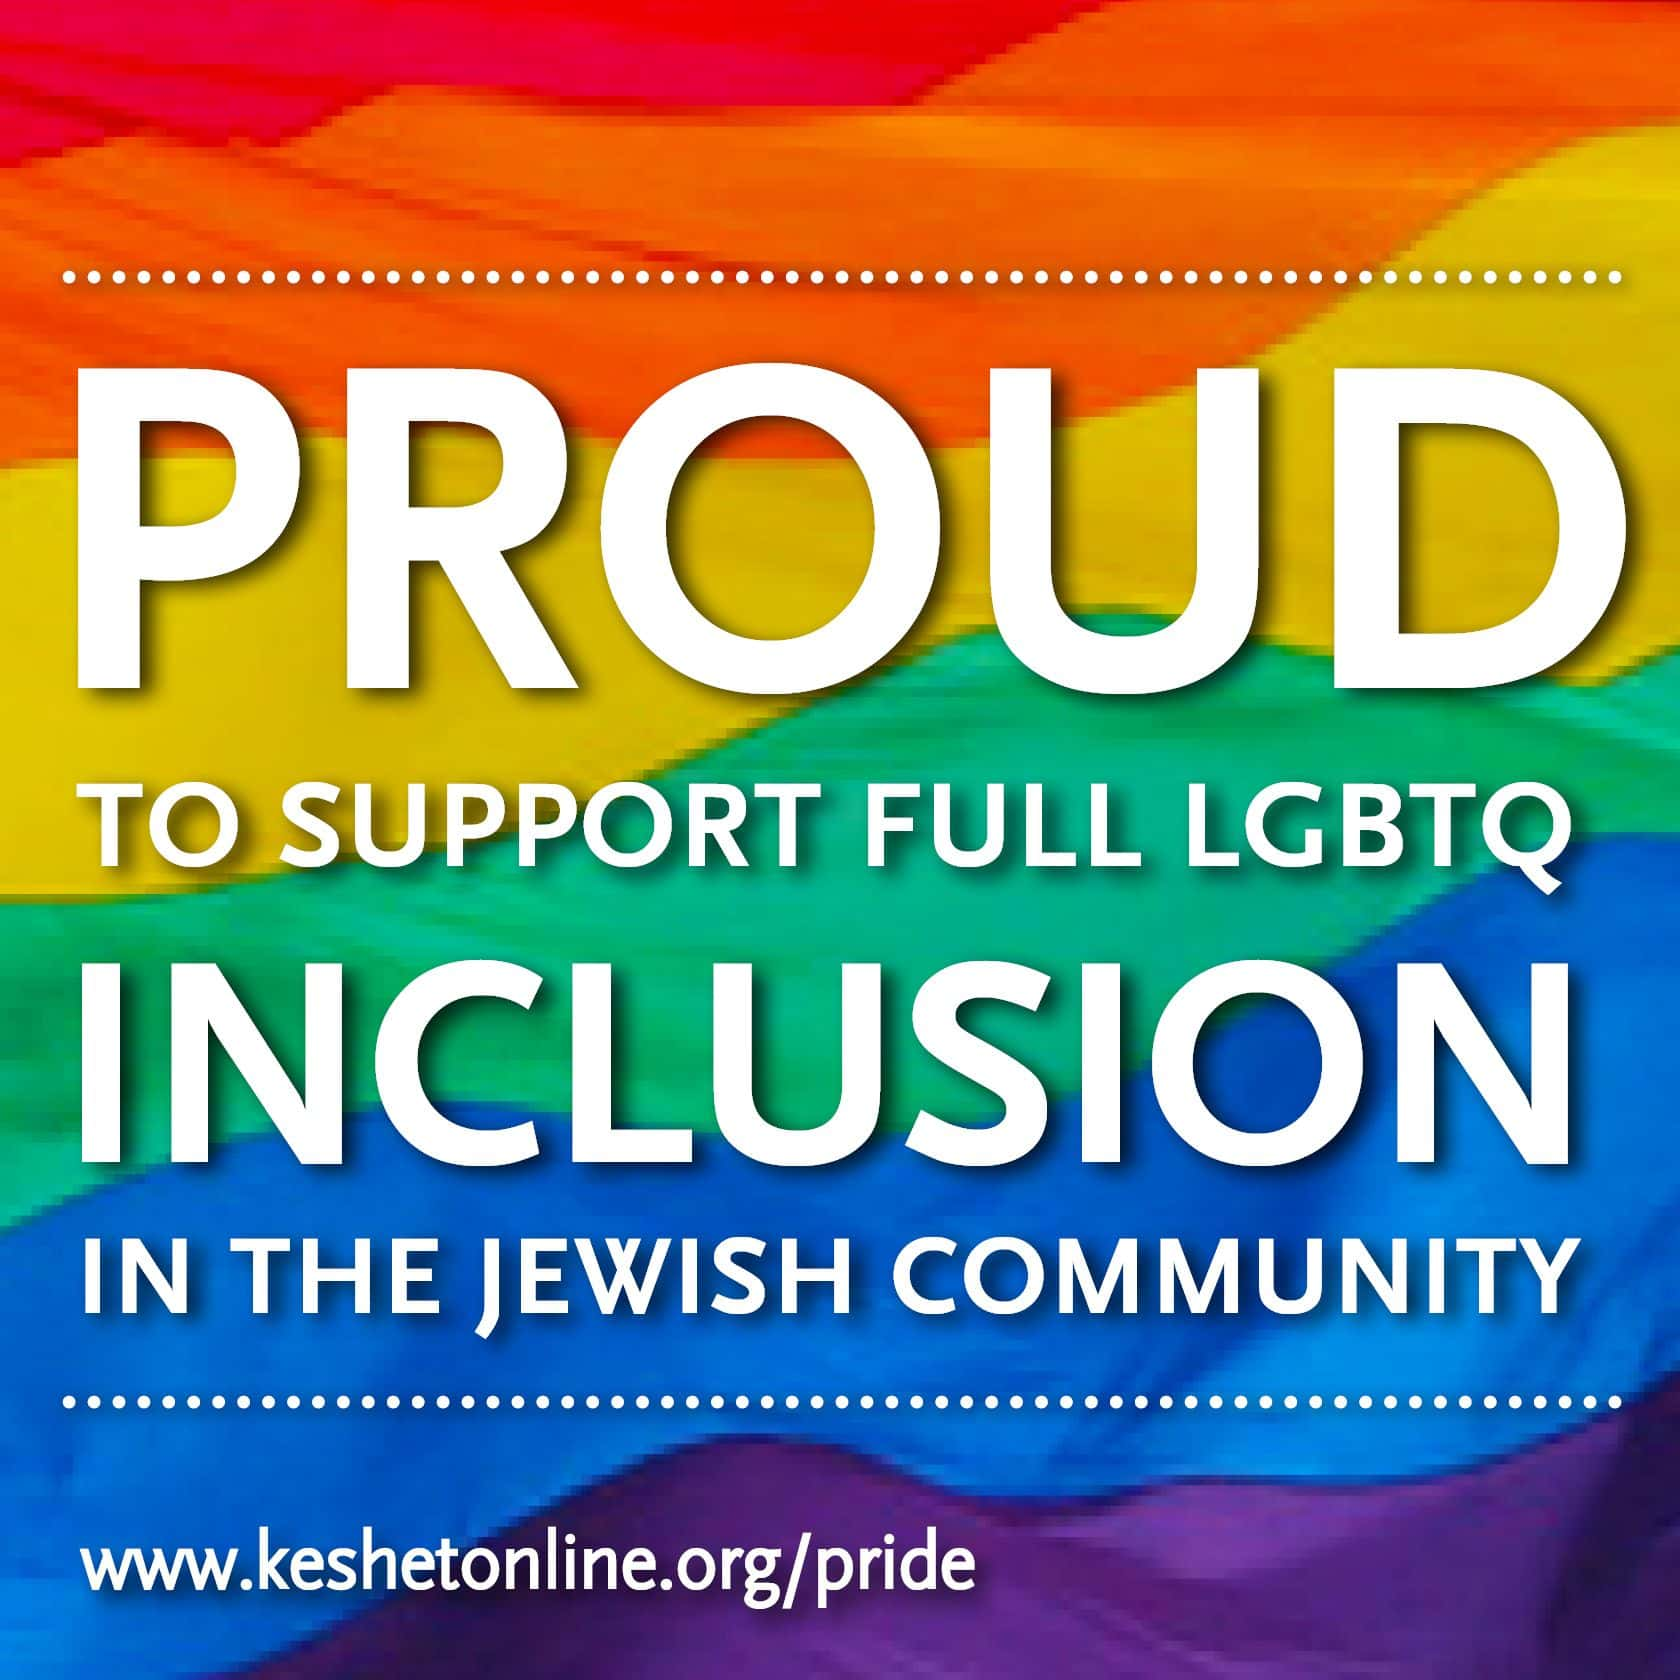 support-full-lgbtq-inclusion-jewish-community